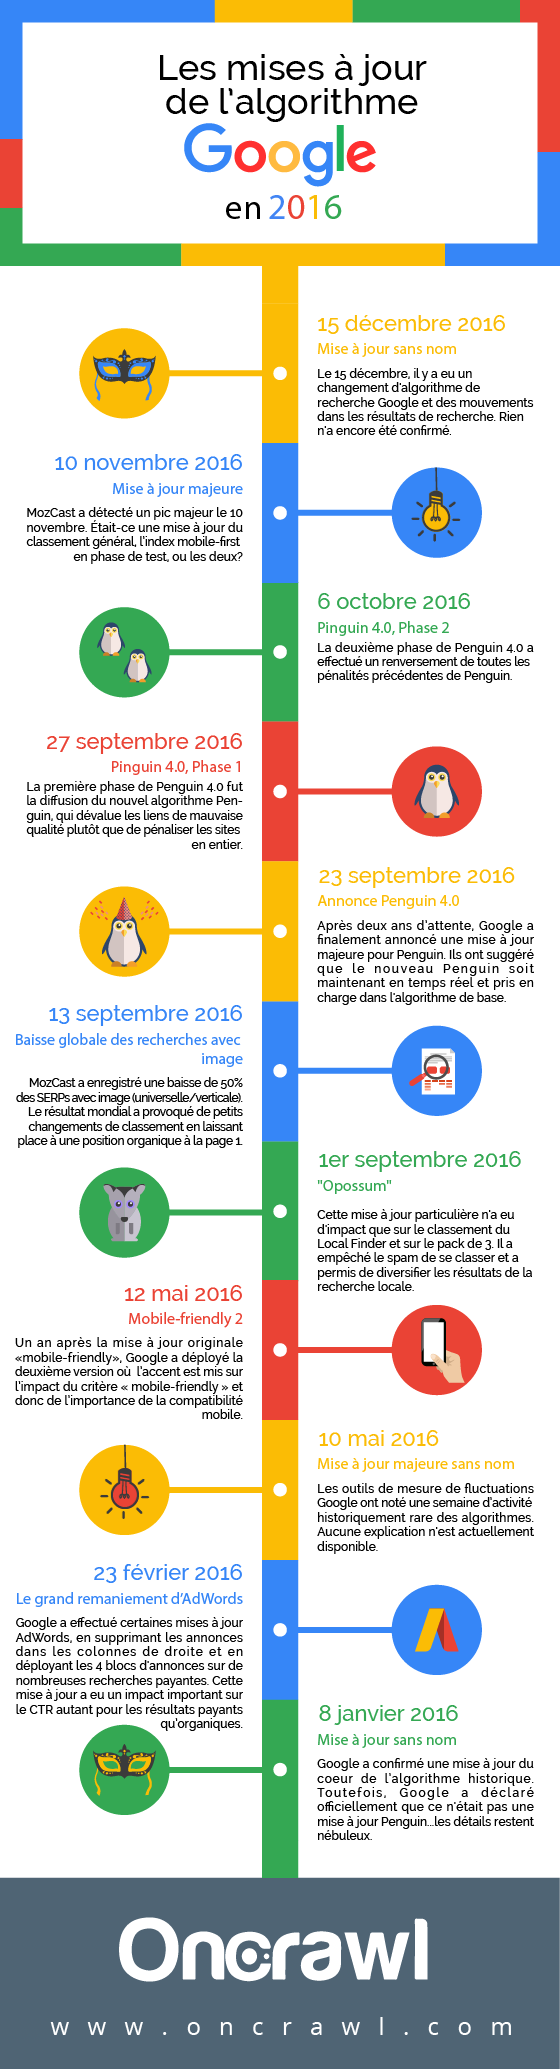 infographie-updates-google-2016-oncrawl